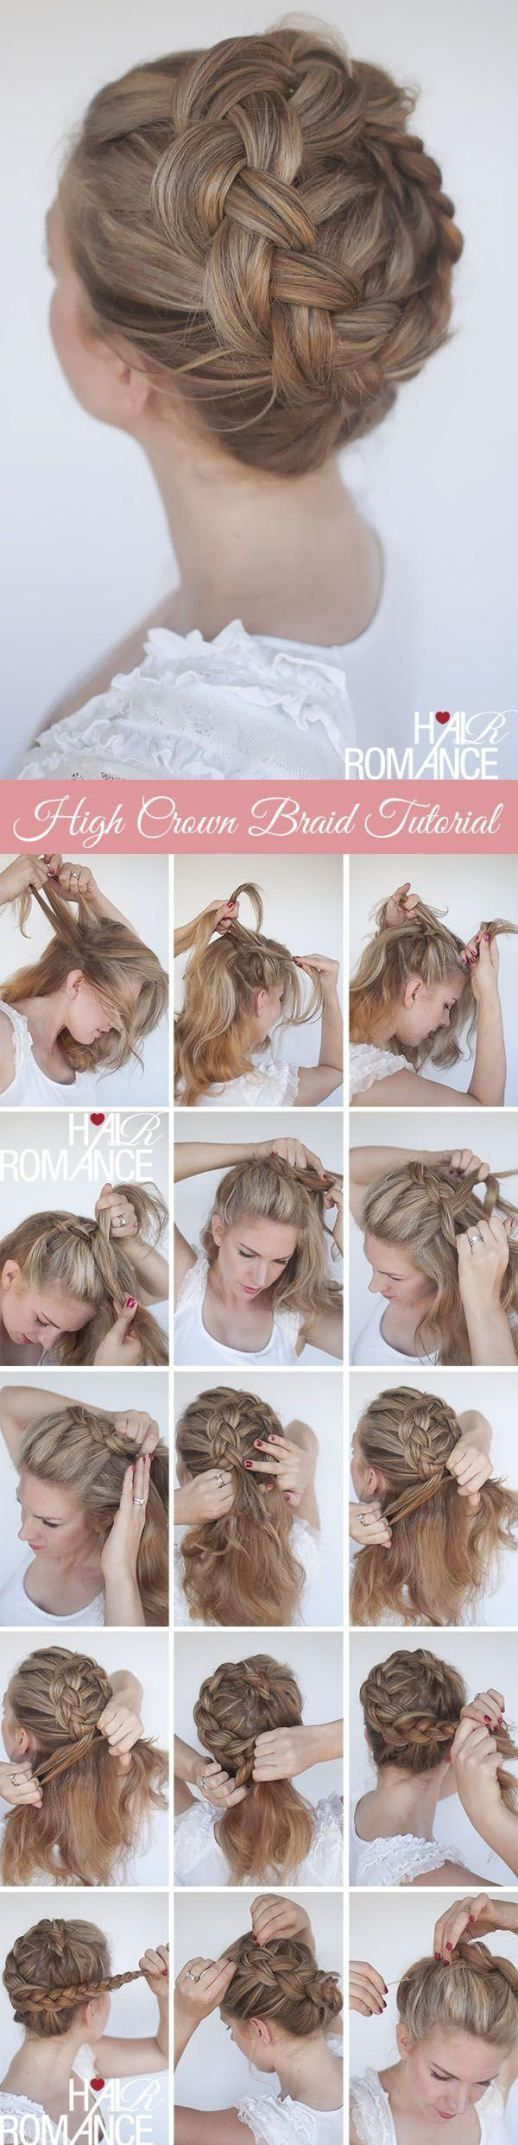 Lovely Braided Crown Hairstyle Tutorial